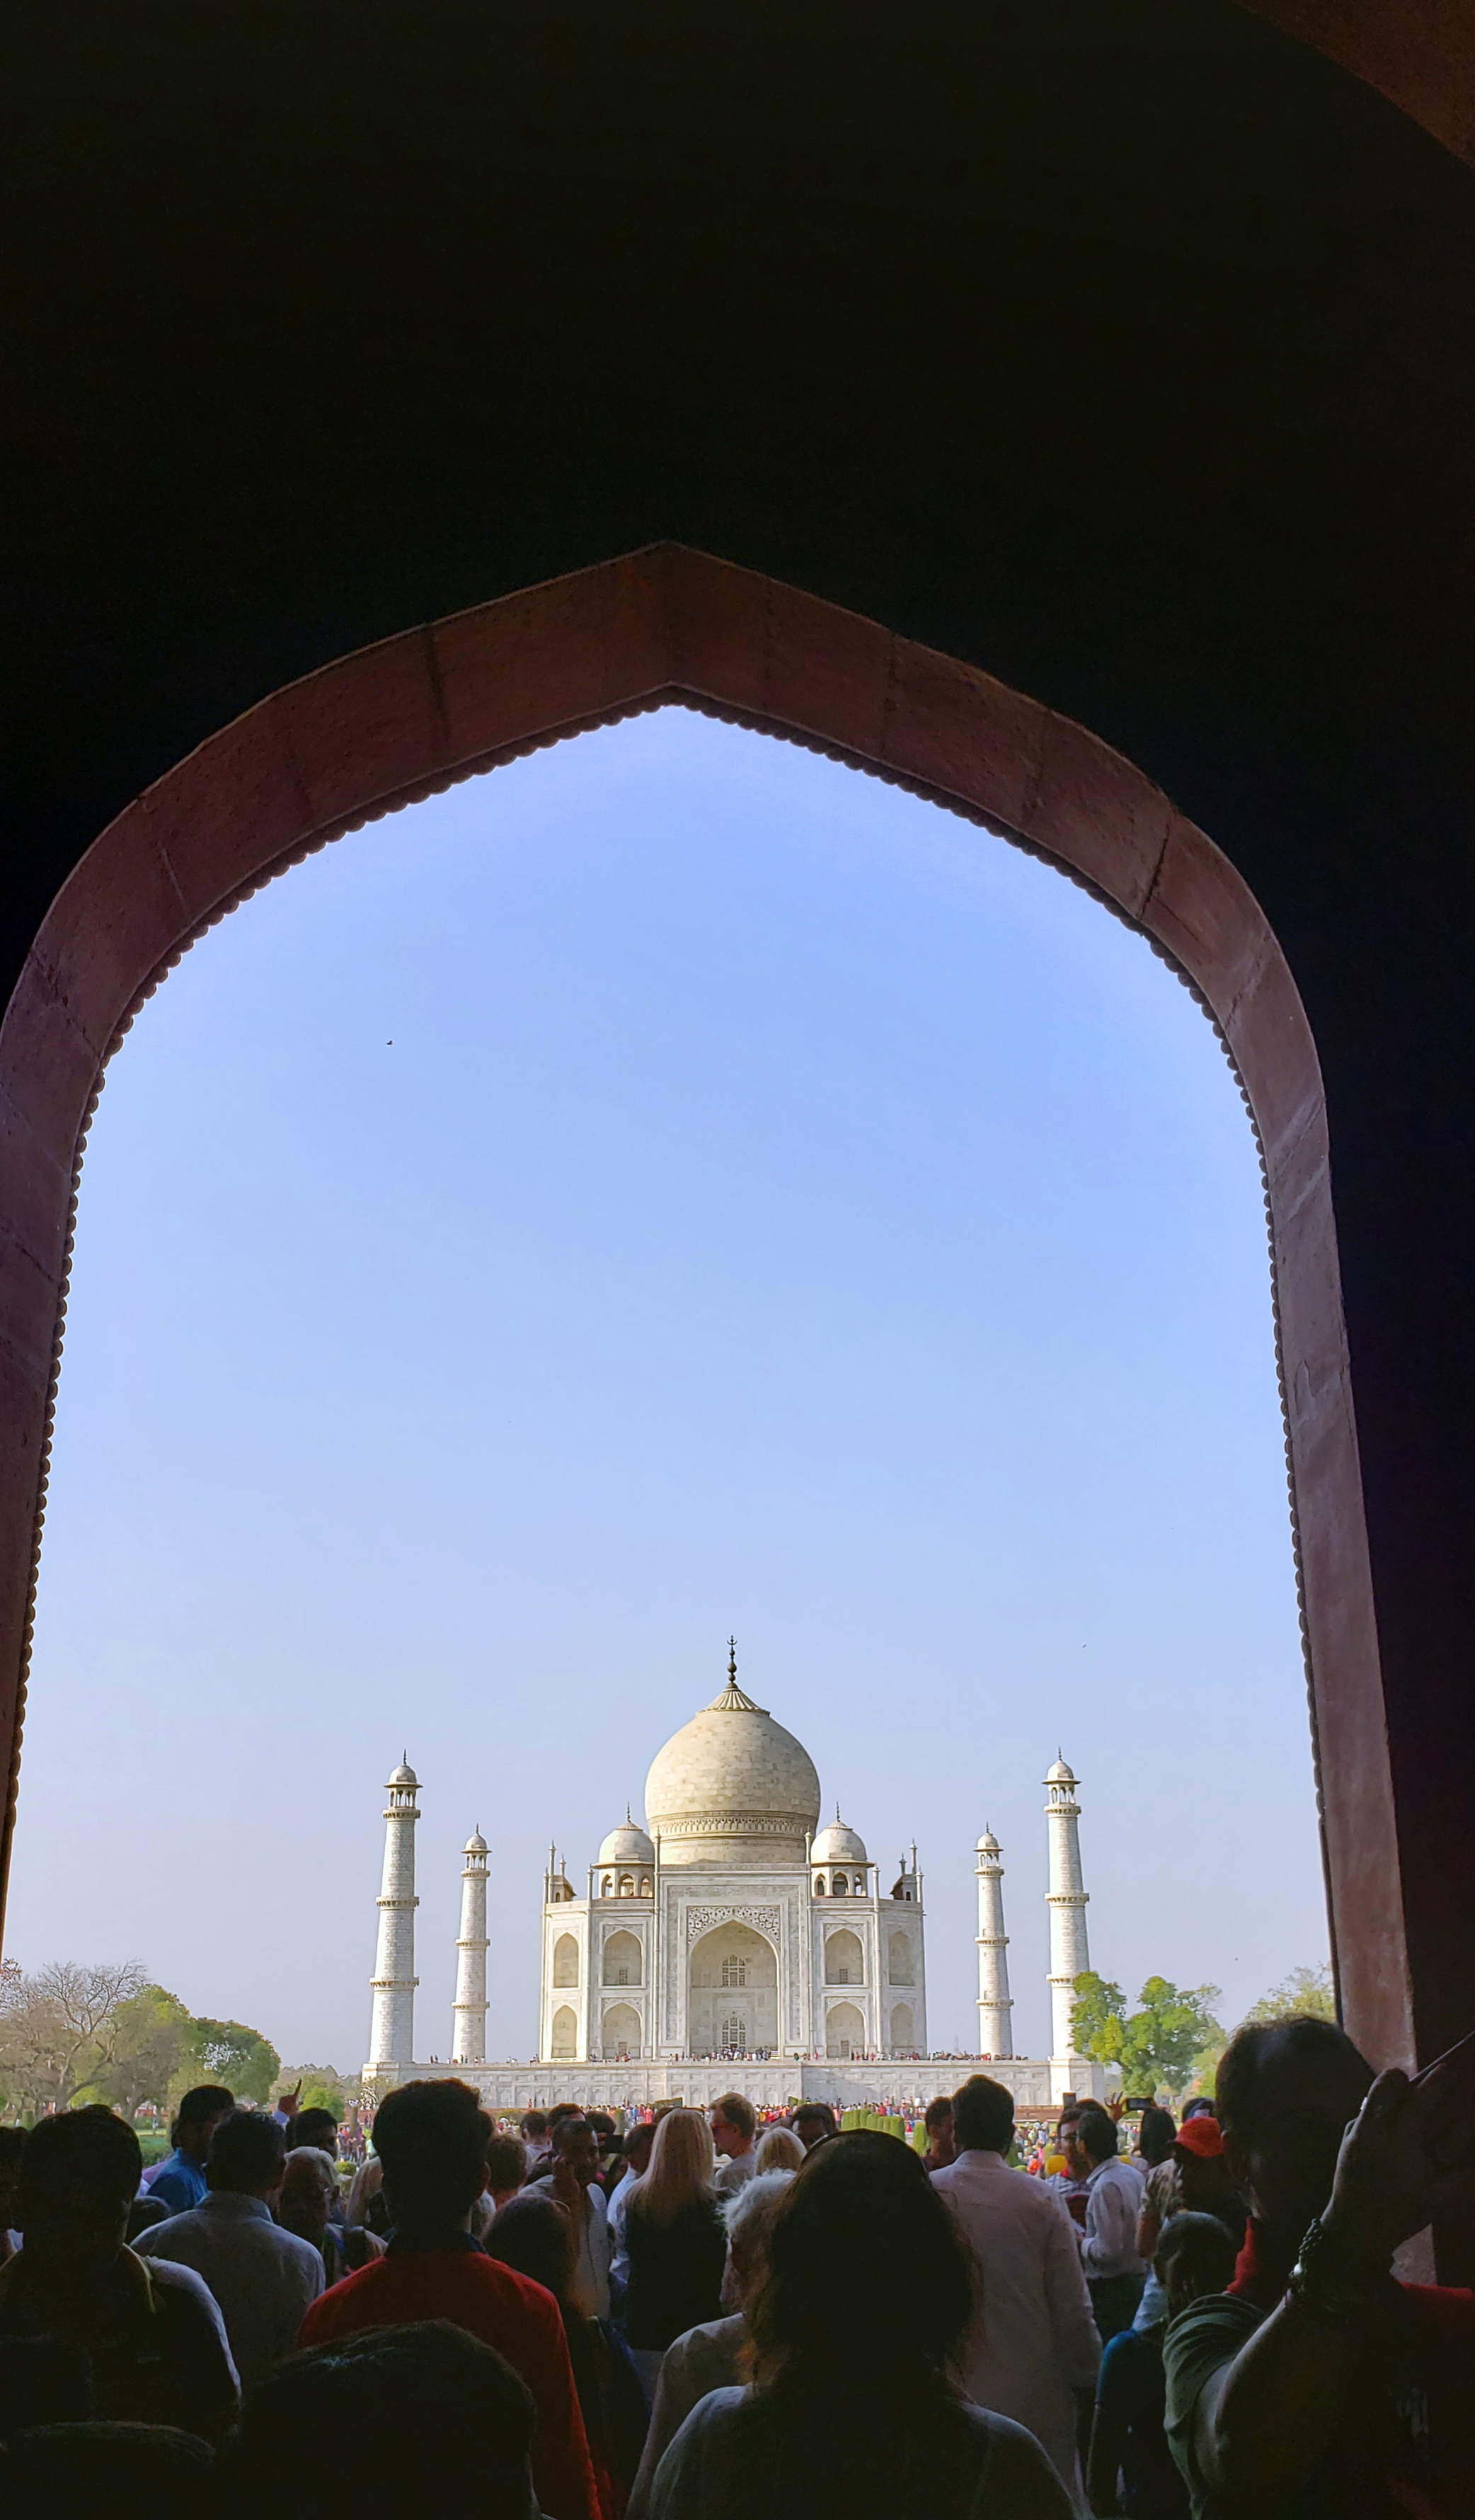 Visiting_The_Taj_Mahal_Everything_You_Need_To_Know_Before_You_Go